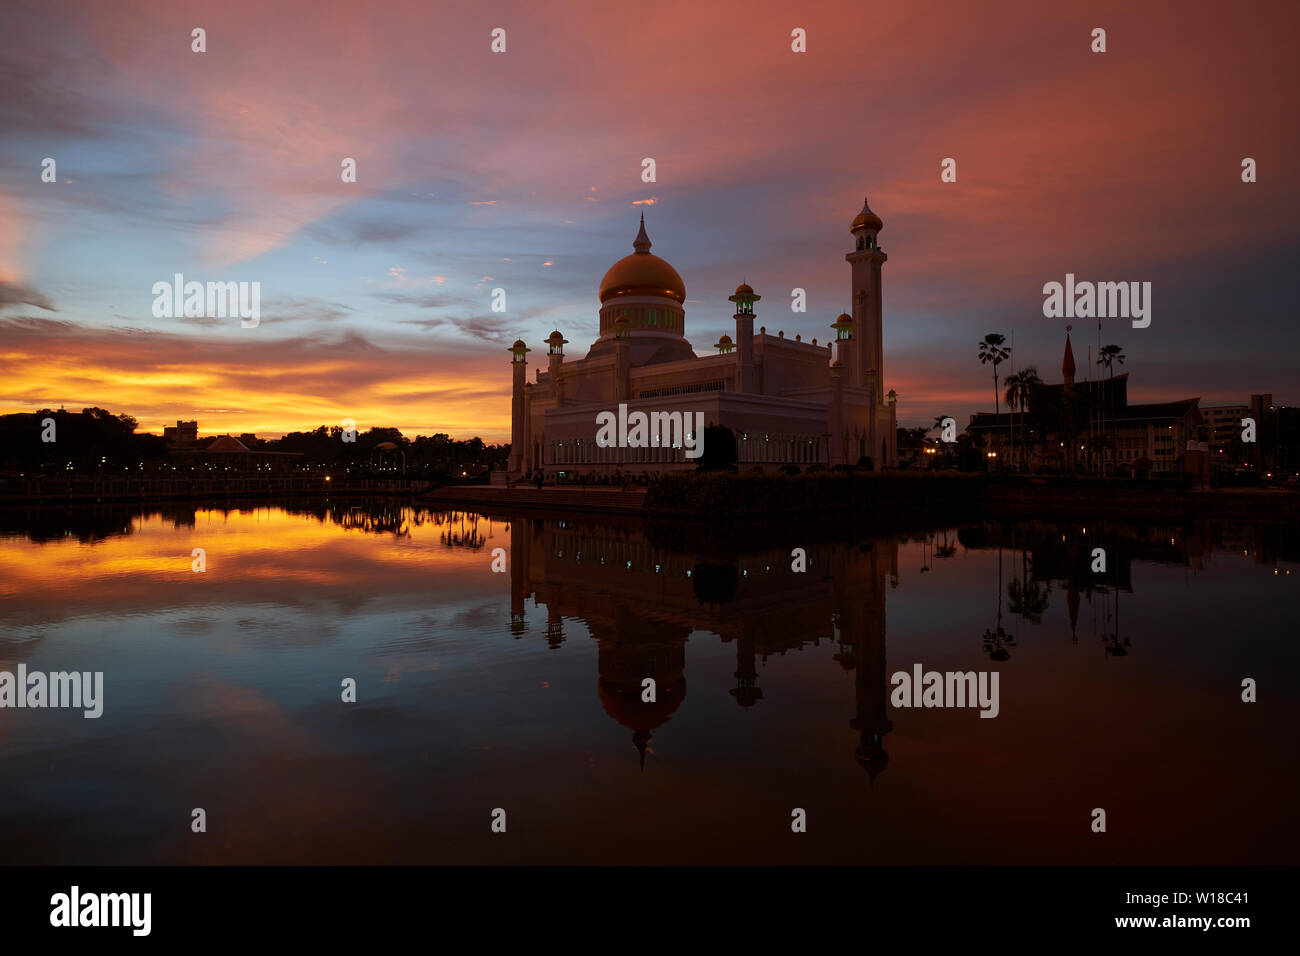 Sunset view of the Omar Ali Saifuddien mosque in downtown Bandar Seri Begawan,Brunei. - Stock Image